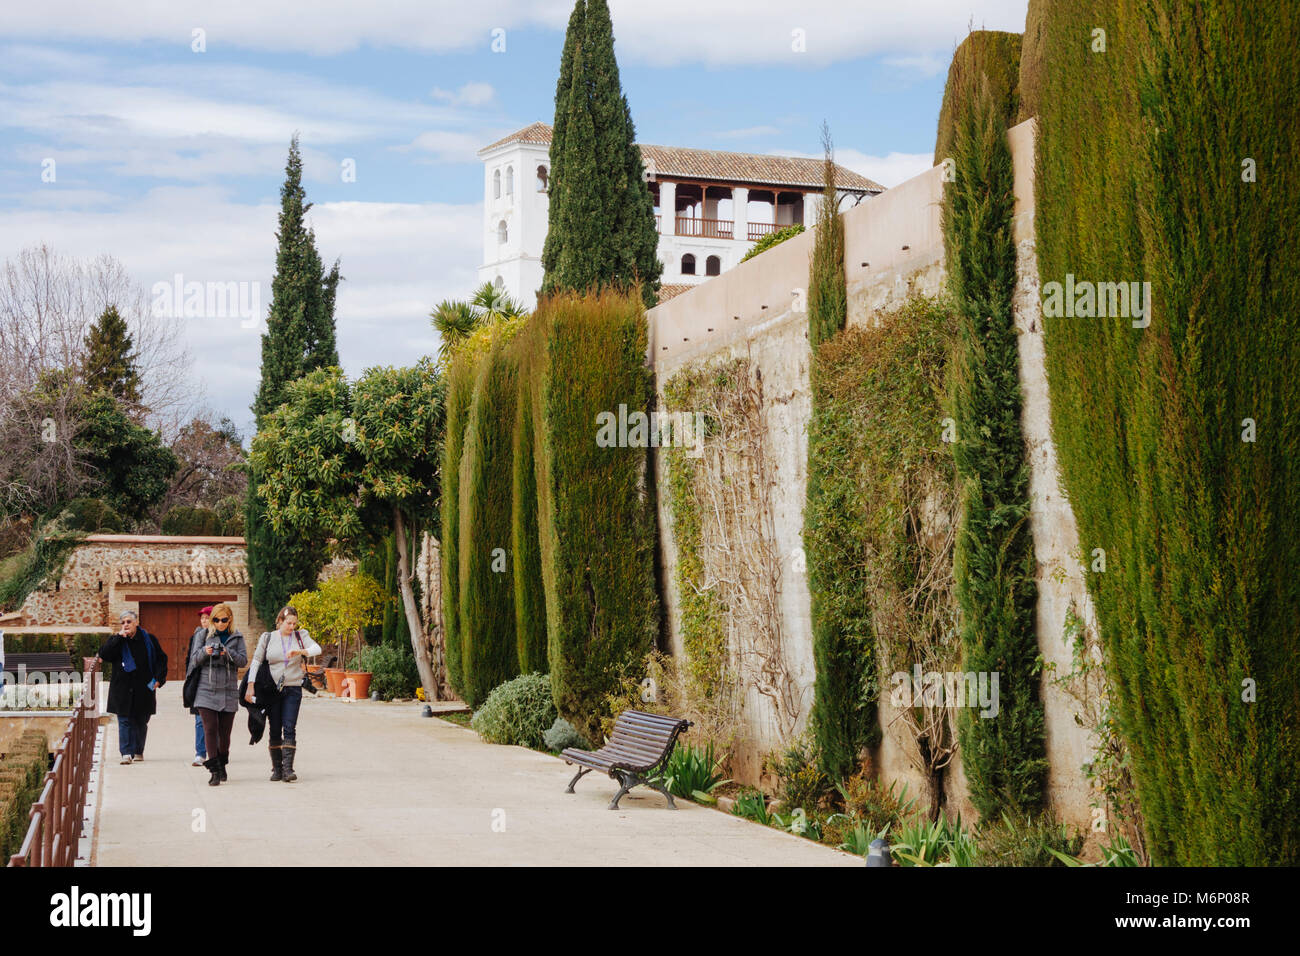 Granada, Andalusia, Spain : Tourists walk in the gardens of the Generalife palace inside the Alhambra and Generalife complex. Stock Photo